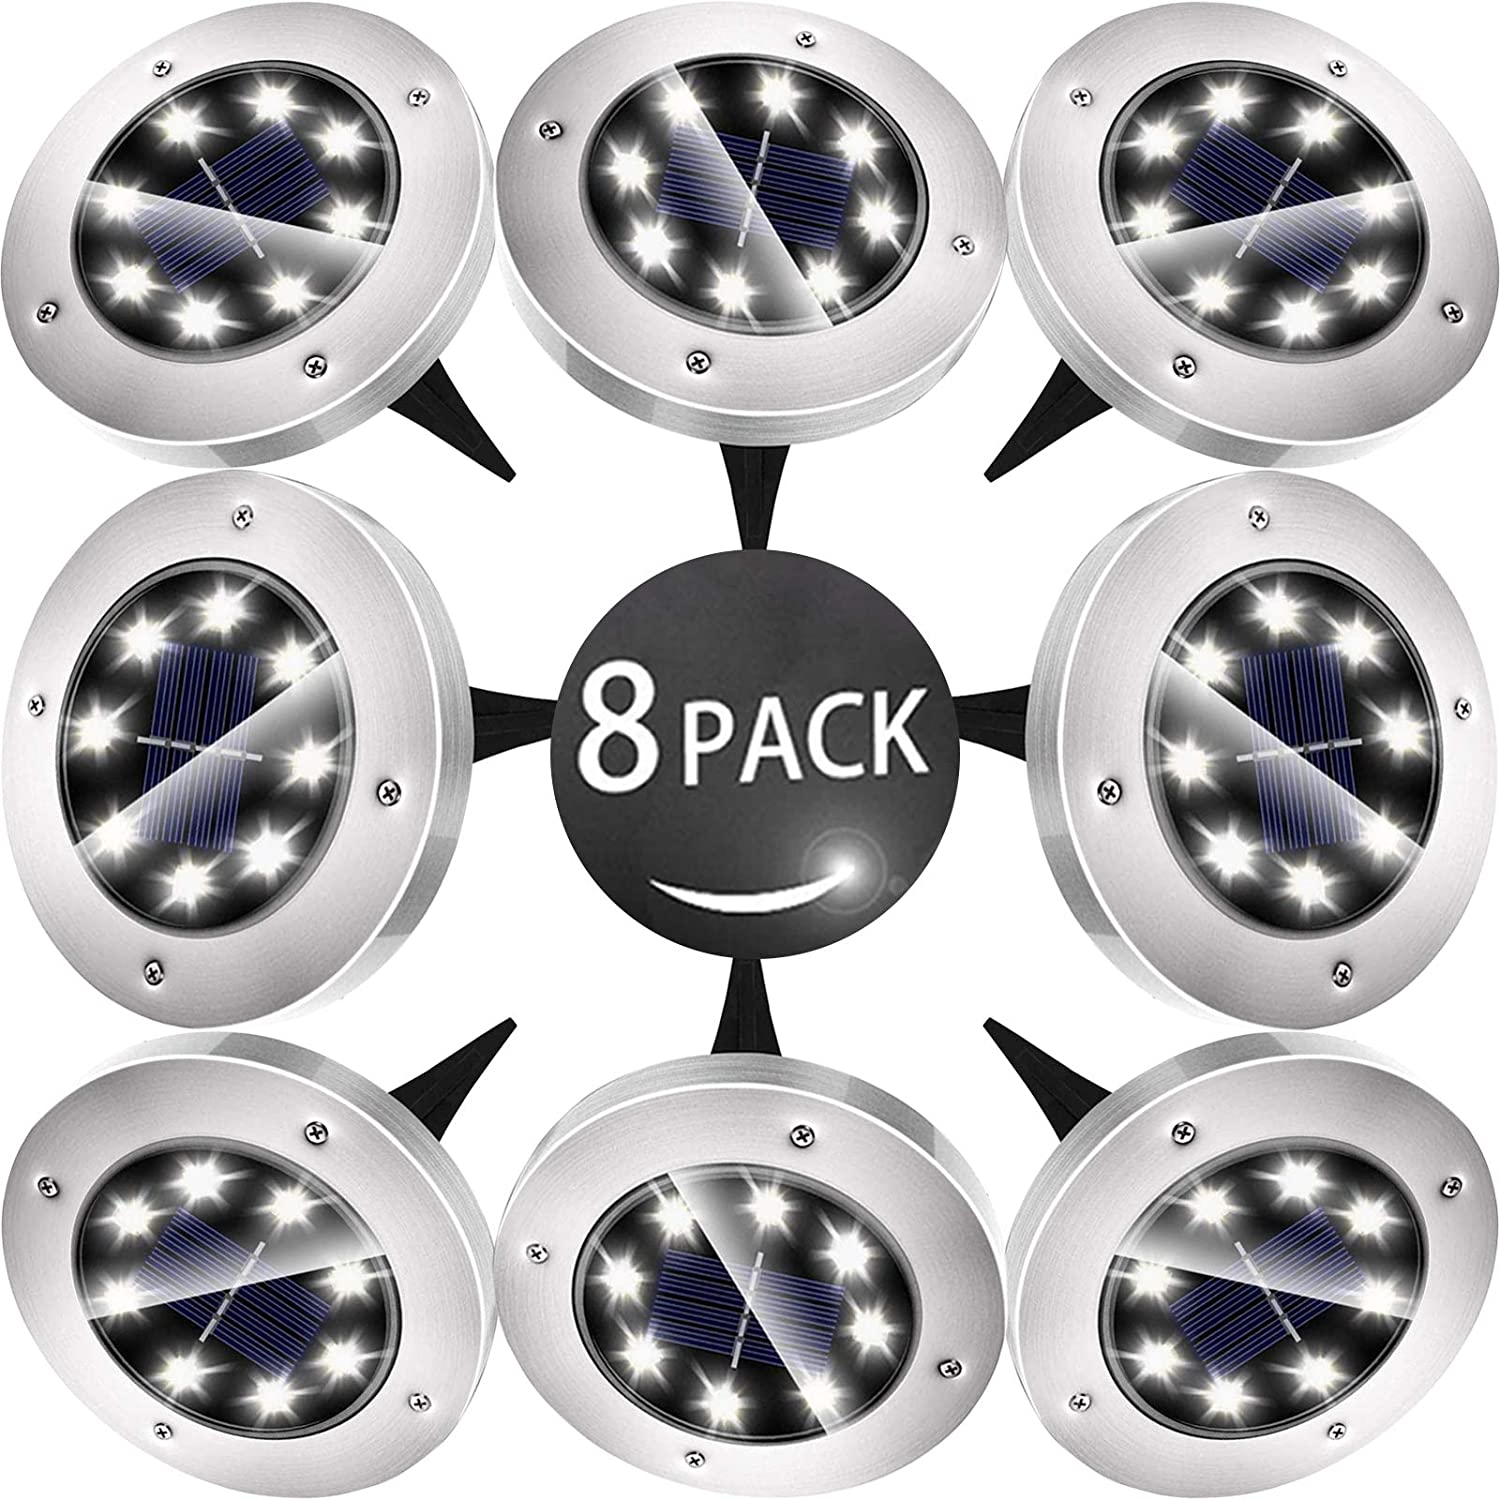 Biling Solar Disk Lights Outdoor, 8 LED Bulbs Solar Ground Lights Outdoor Waterproof for Garden Yard Patio Pathway Lawn Driveway - White (8 Pack)